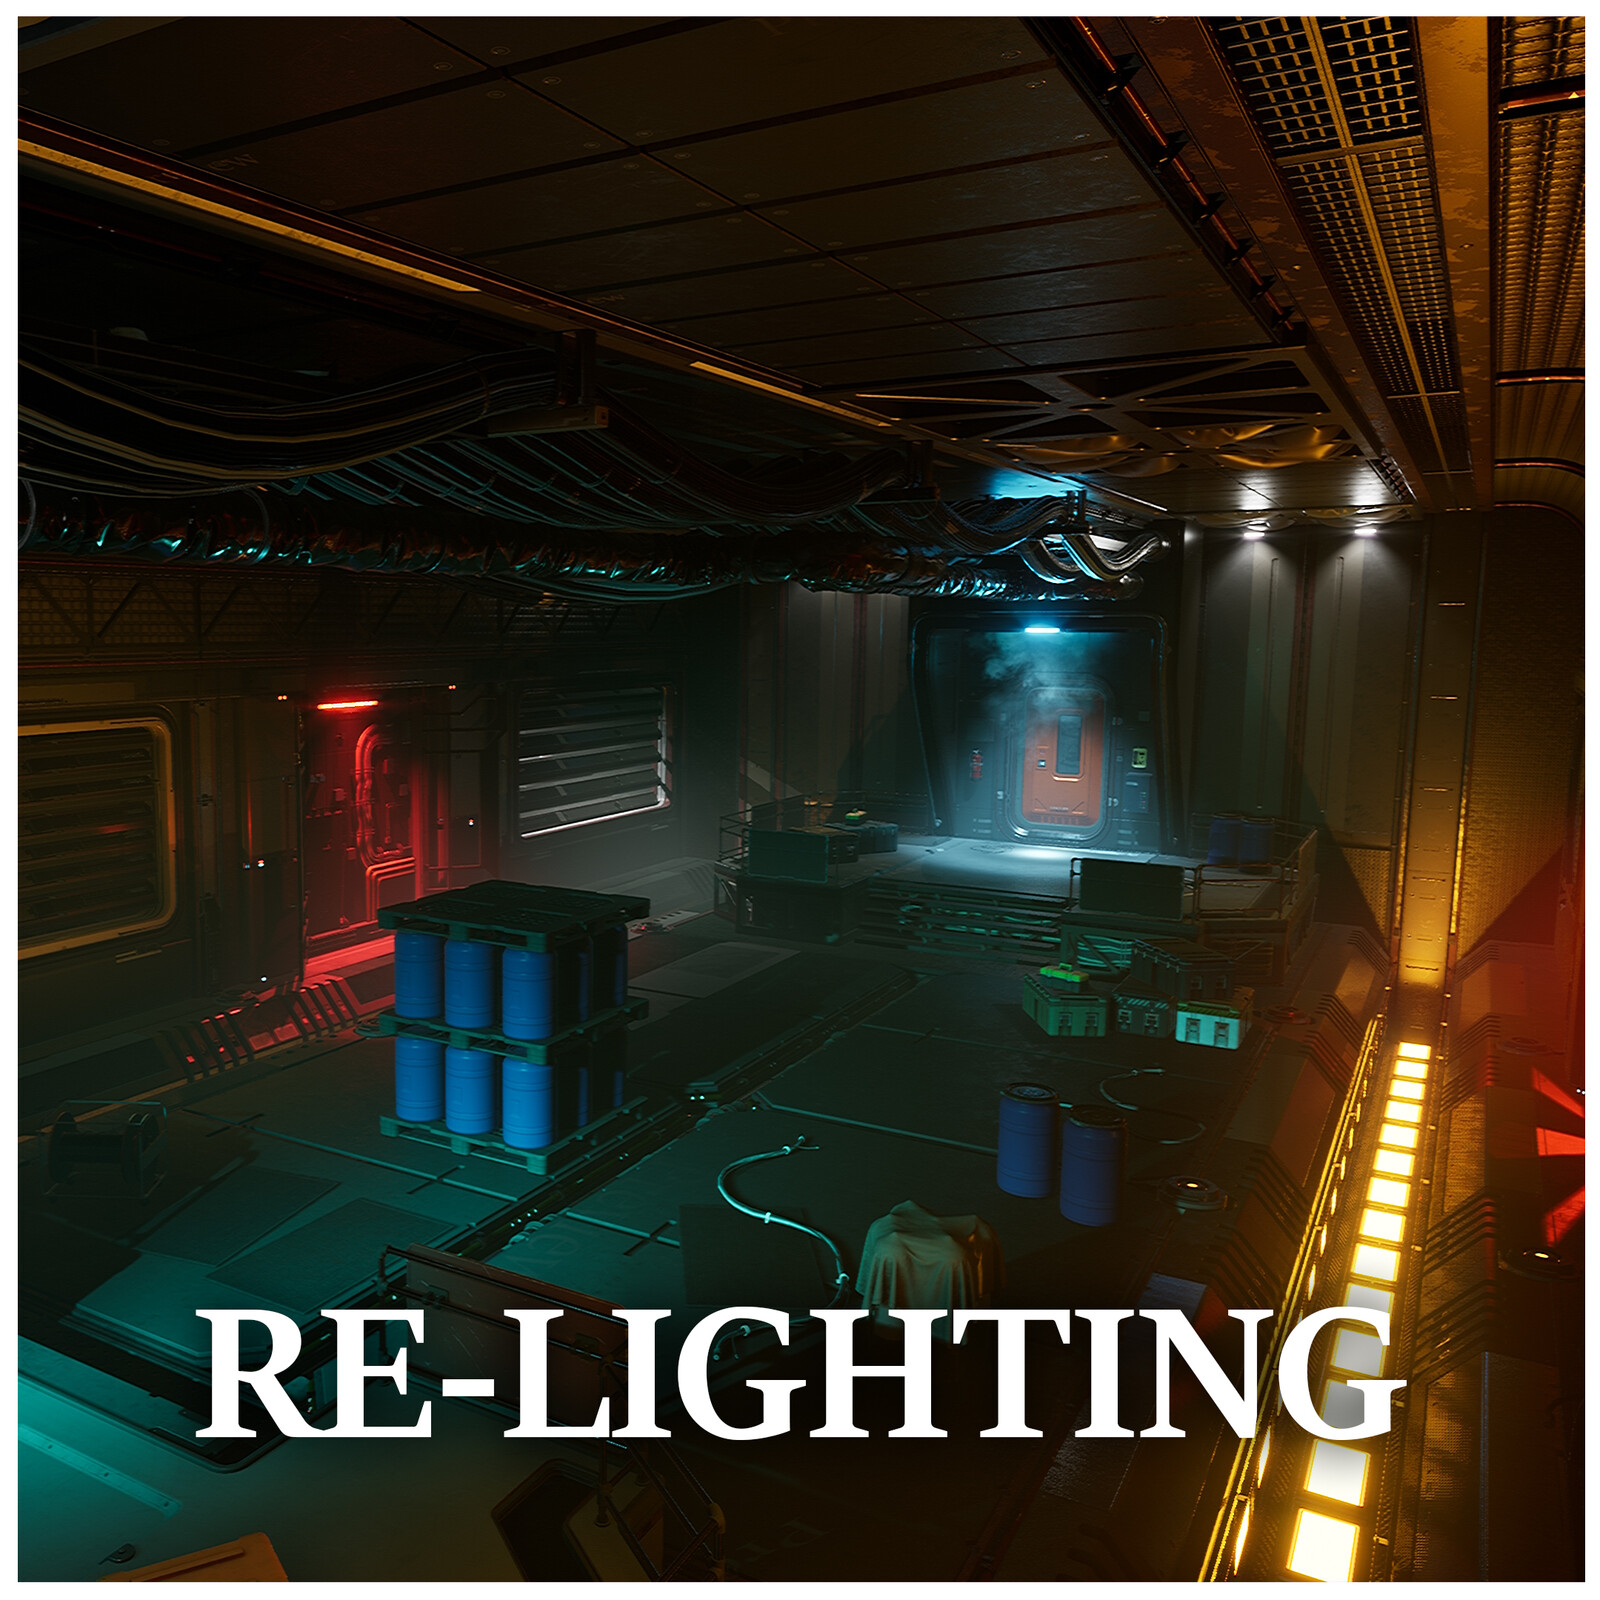 Re-Lighting Study | Jonathon Frederick's Modular SciFi: Enginee - Re-Lighting